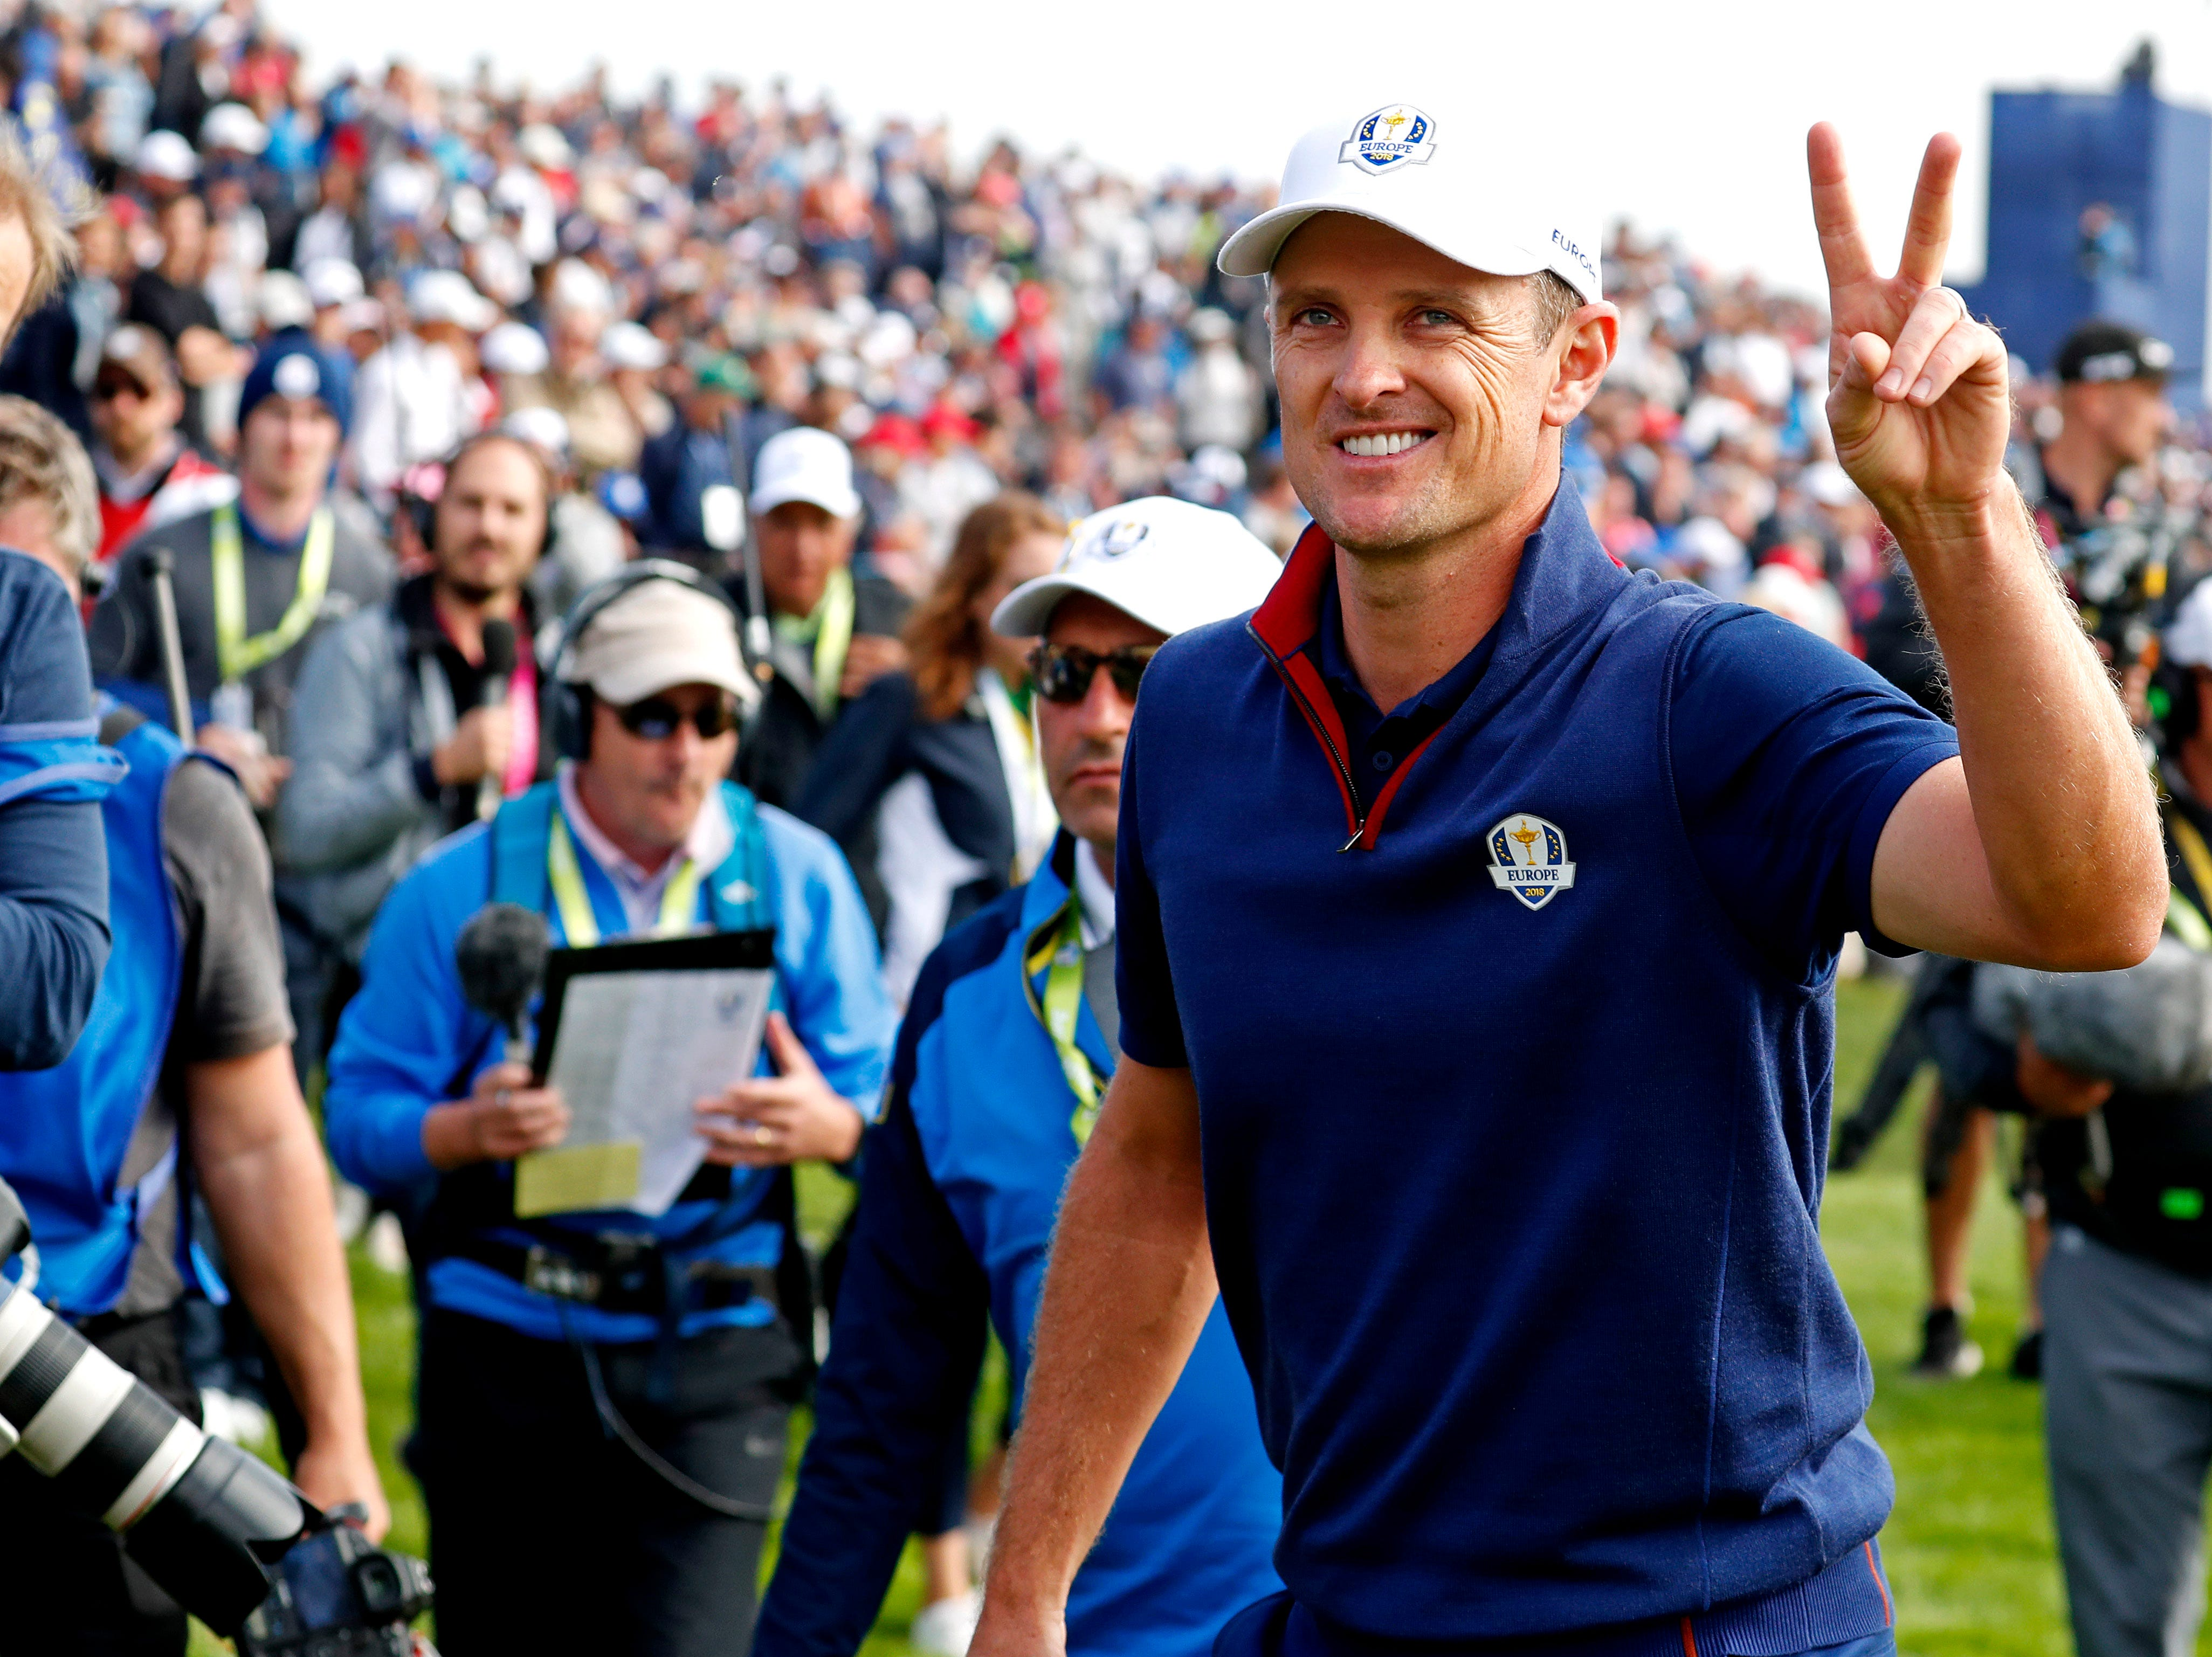 Europe's Justin Rose reacts on the 14th green during the Ryder Cup Friday morning matches.